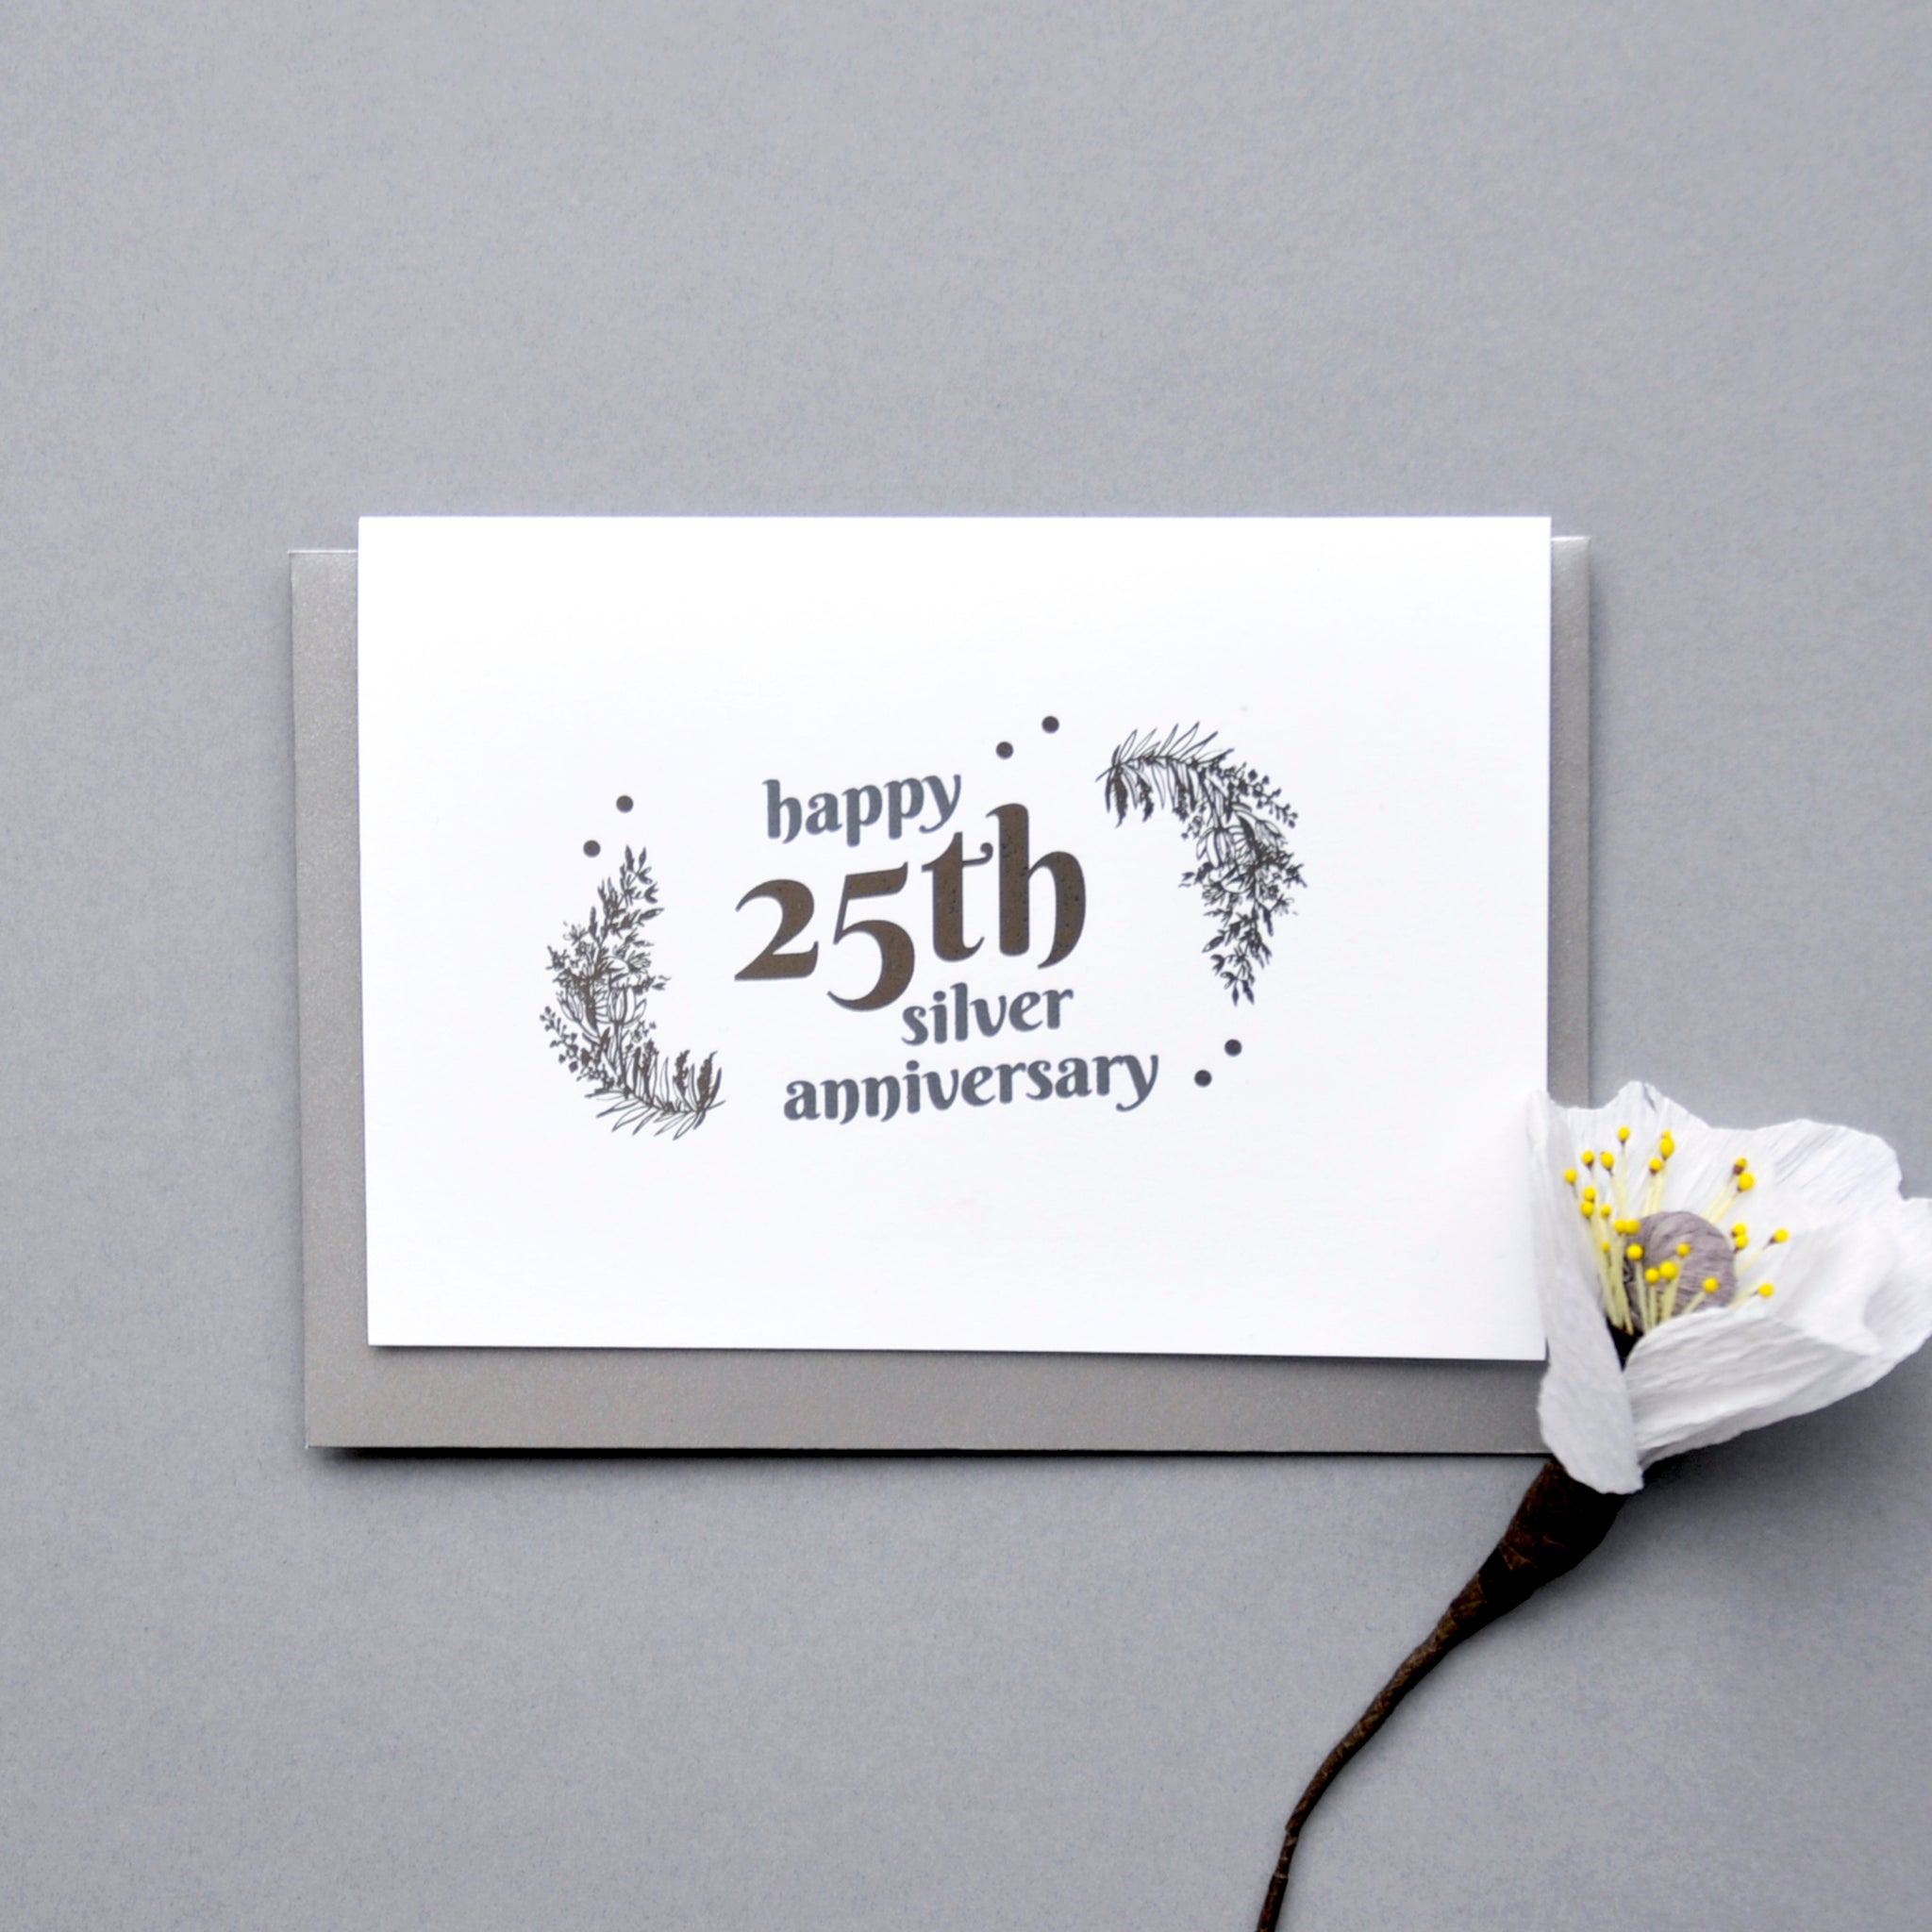 25th Wedding Anniversary Card with Silver Foil - Ant Design Gifts